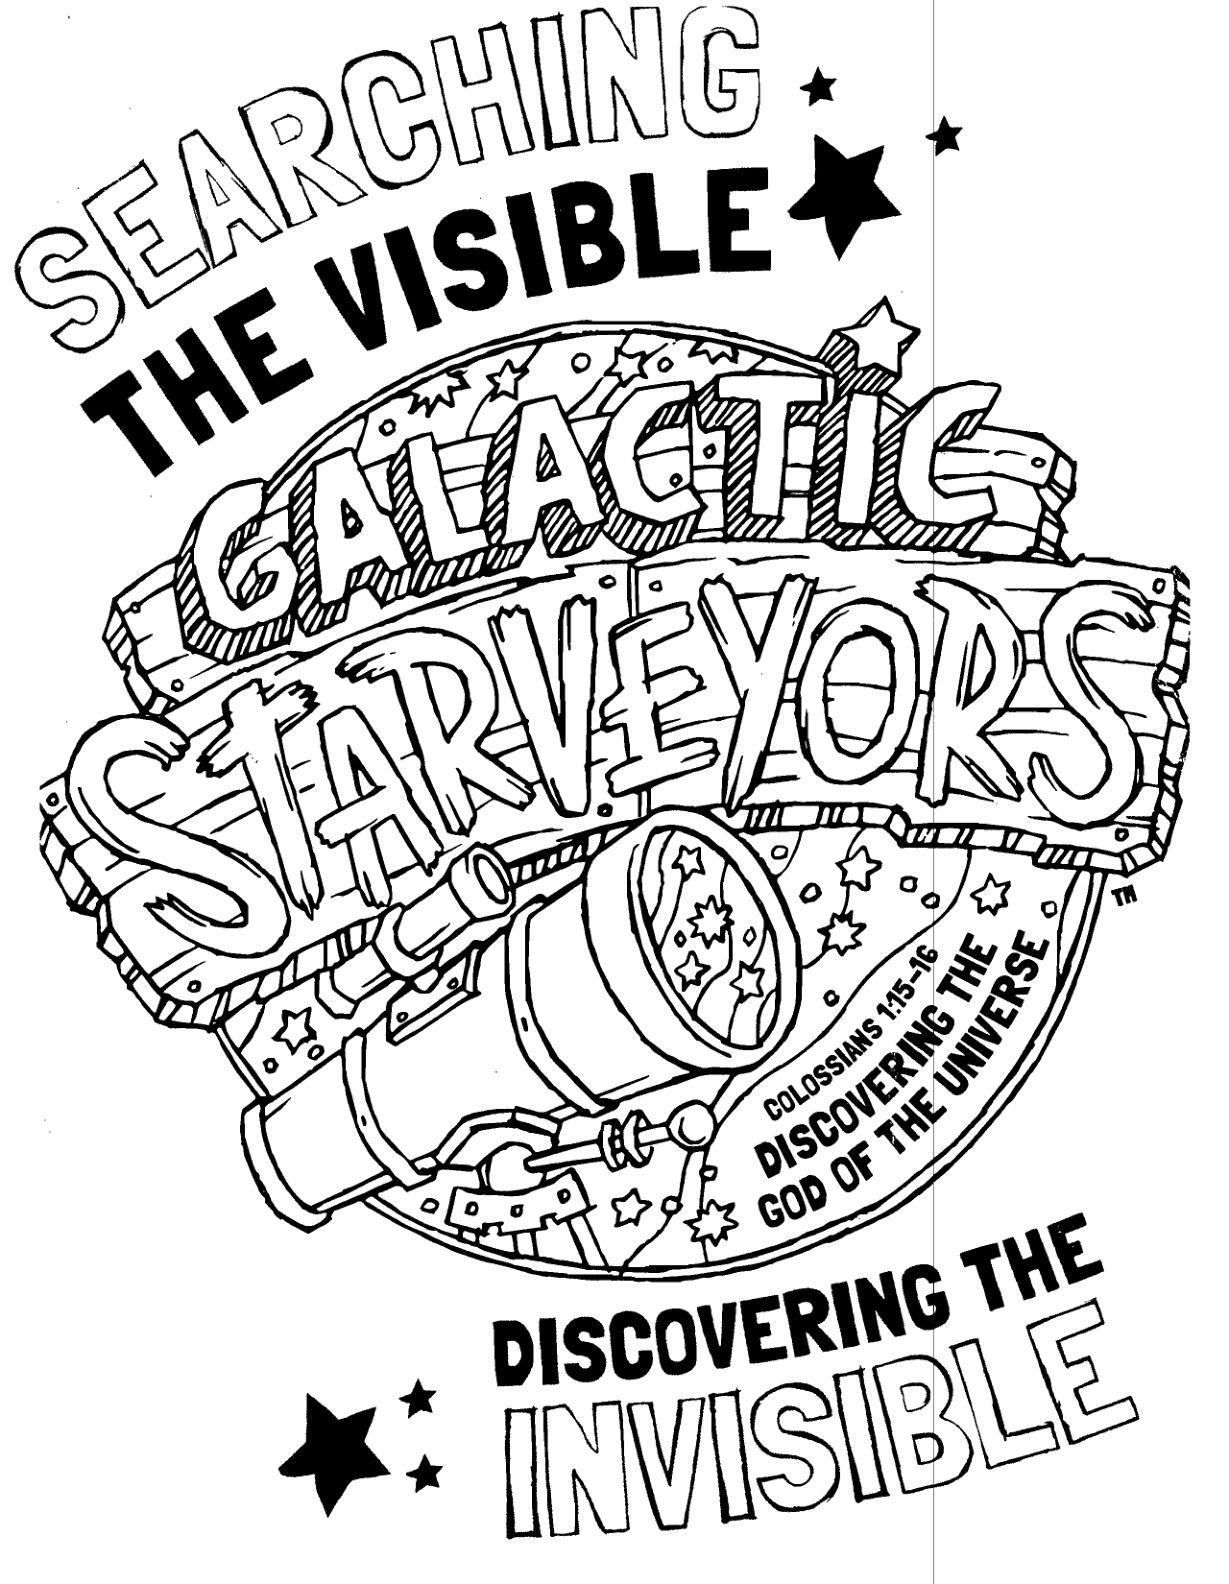 galactic starveyors coloring pages Galactic Starveyors coloring sheet for VBS 2017 | VBS 2017  galactic starveyors coloring pages